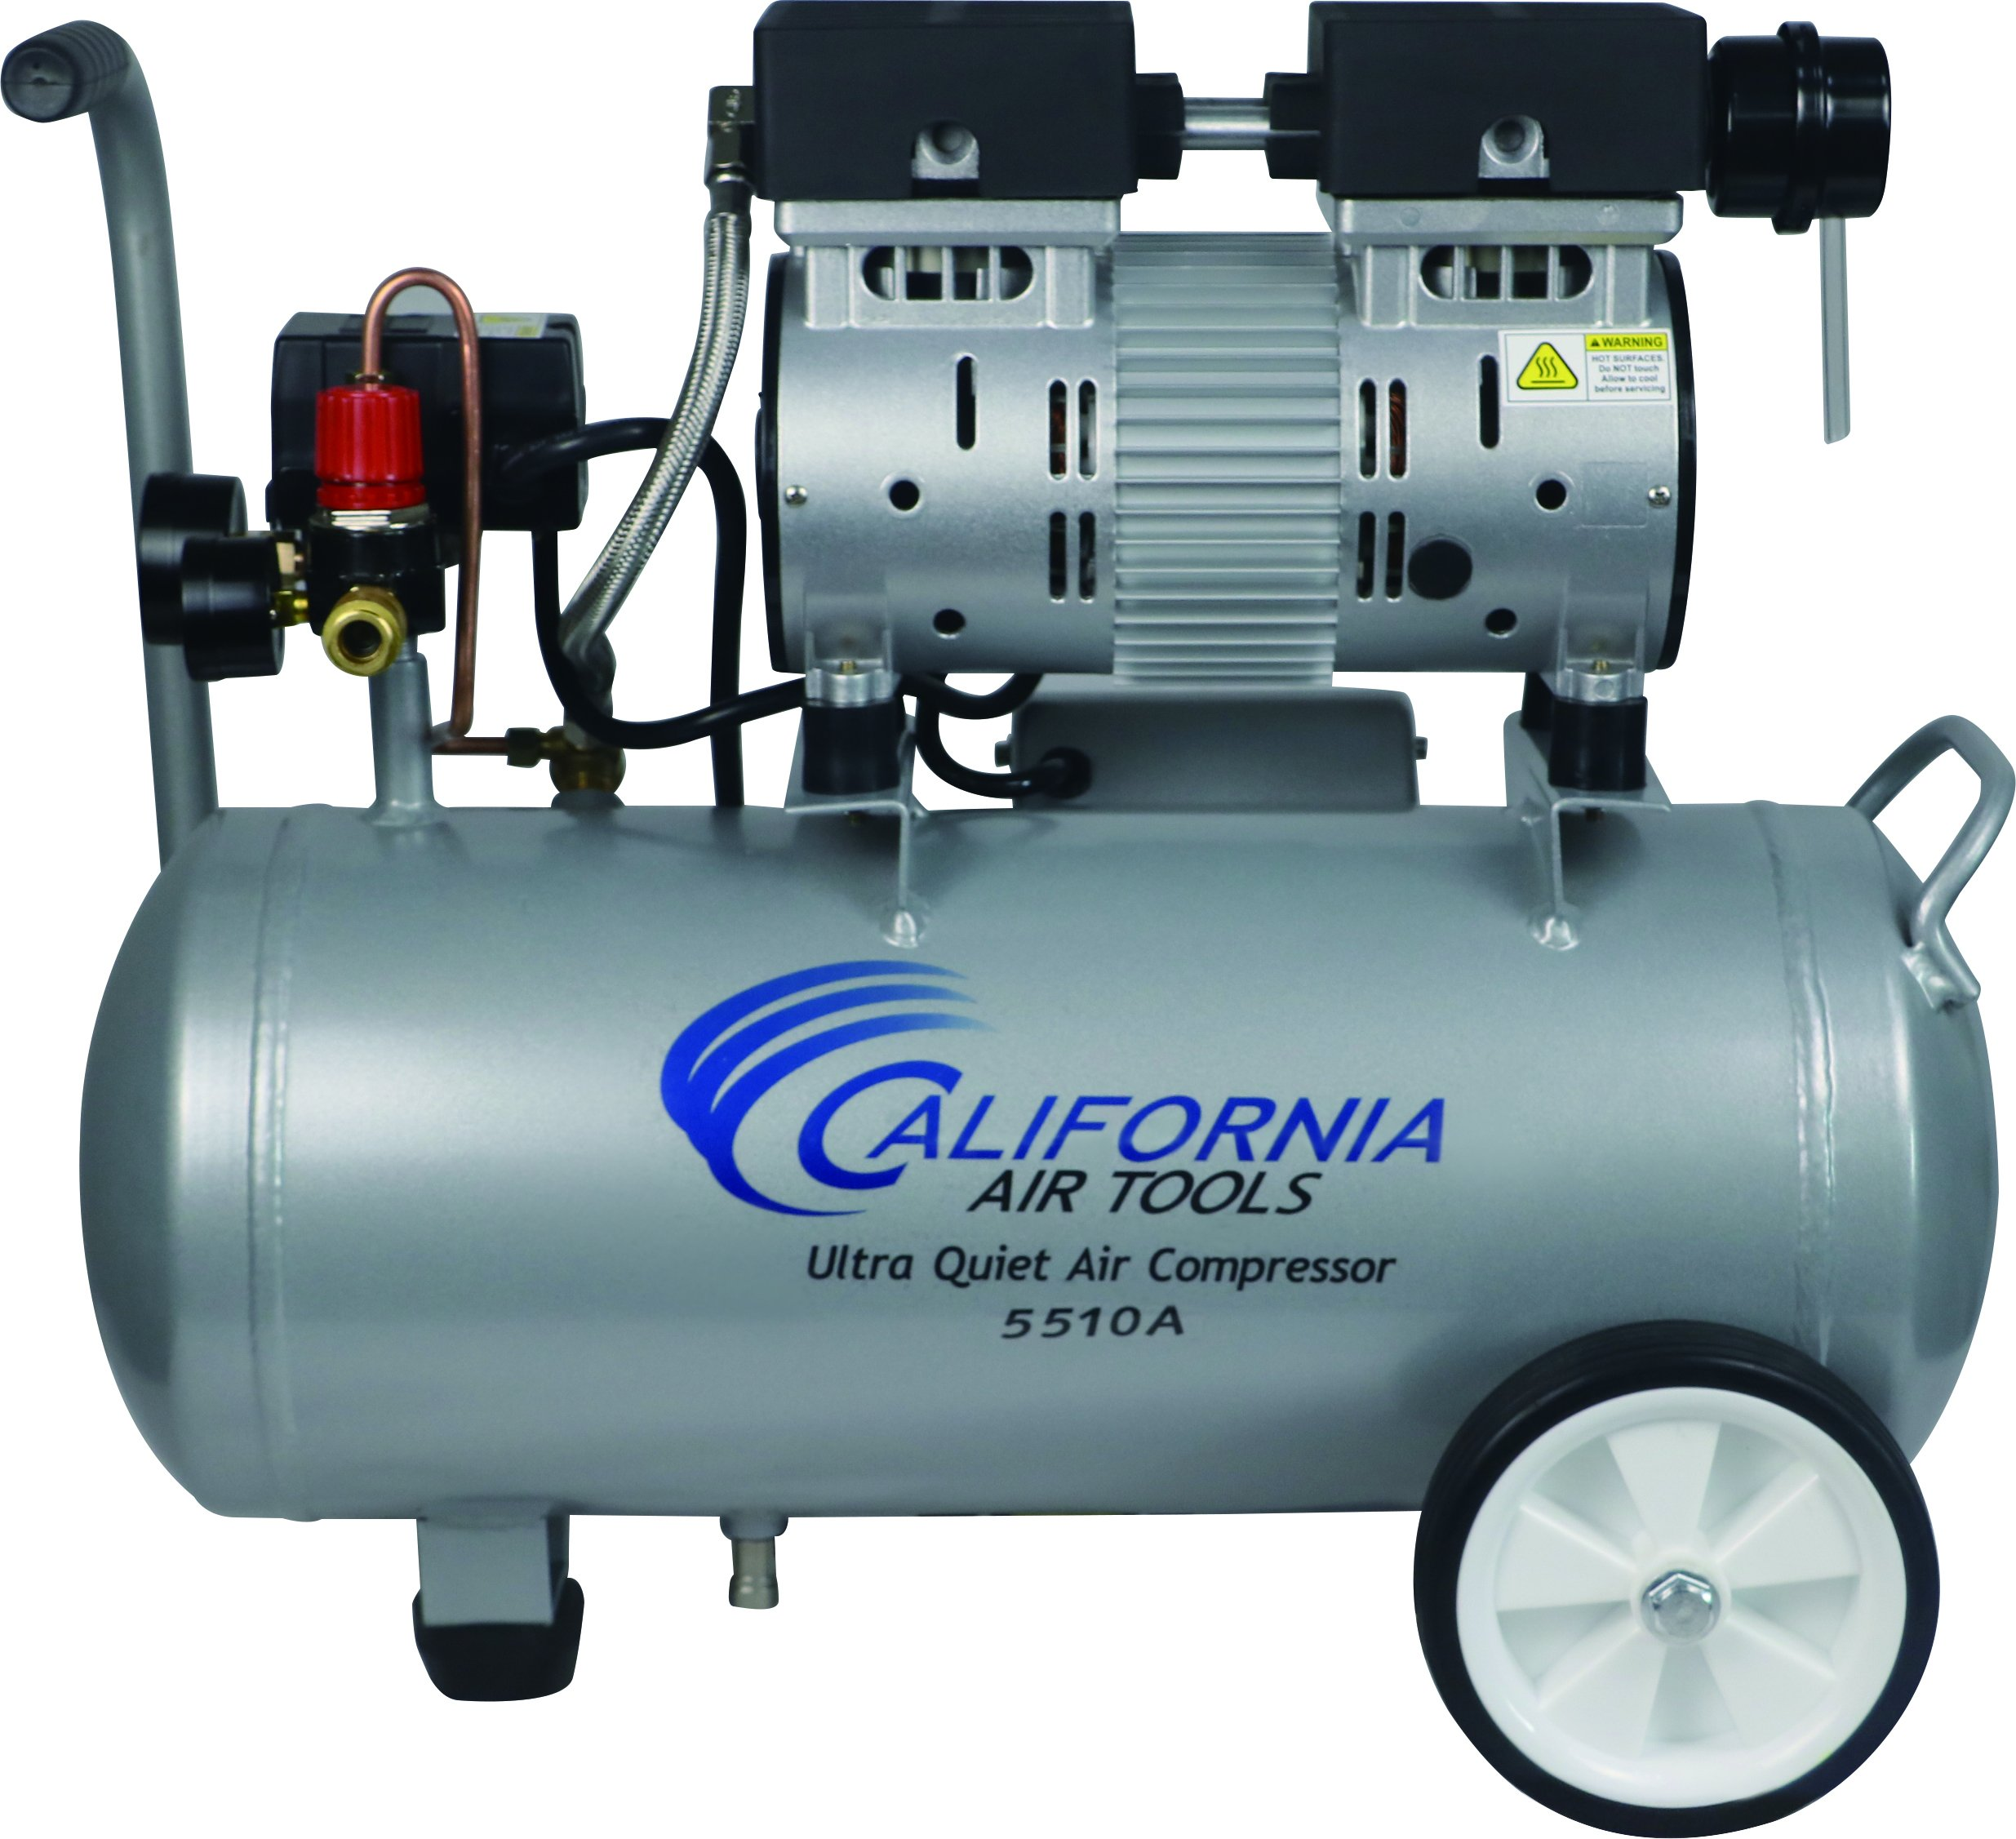 California Air Tools CAT-5510A Ultra Quiet  & Oil-Free 1.0 hp 5.5 gallon Aluminum Portable Electric Portable Air Compressor, Silver by California Air Tools